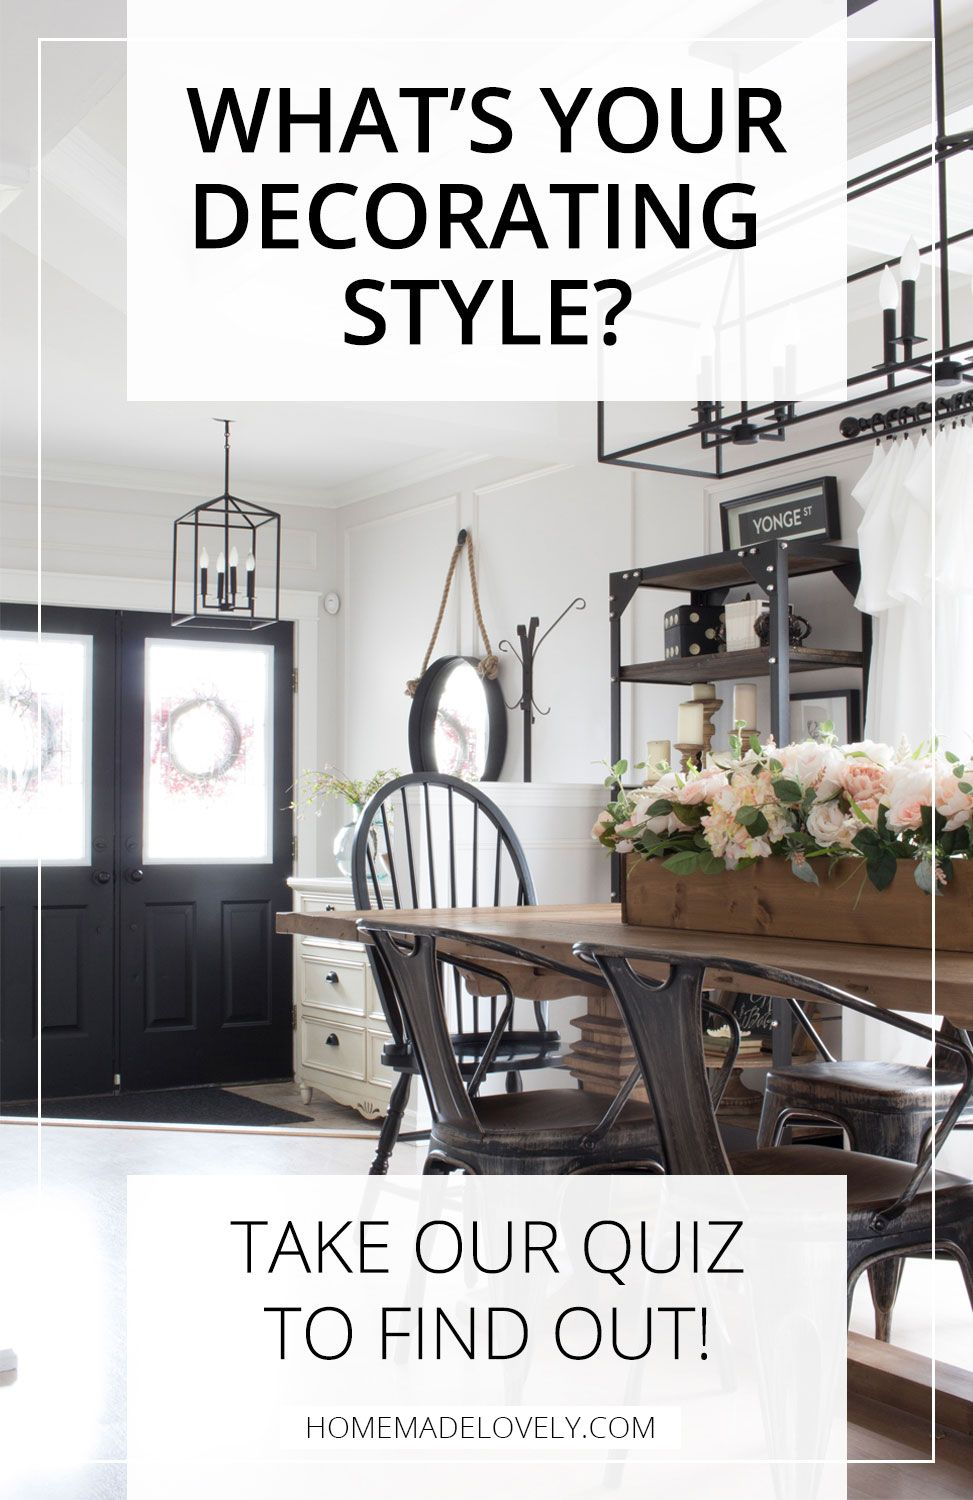 Home Decor Style Quiz.What S Your Decorating Style Quiz Home Decor Styles